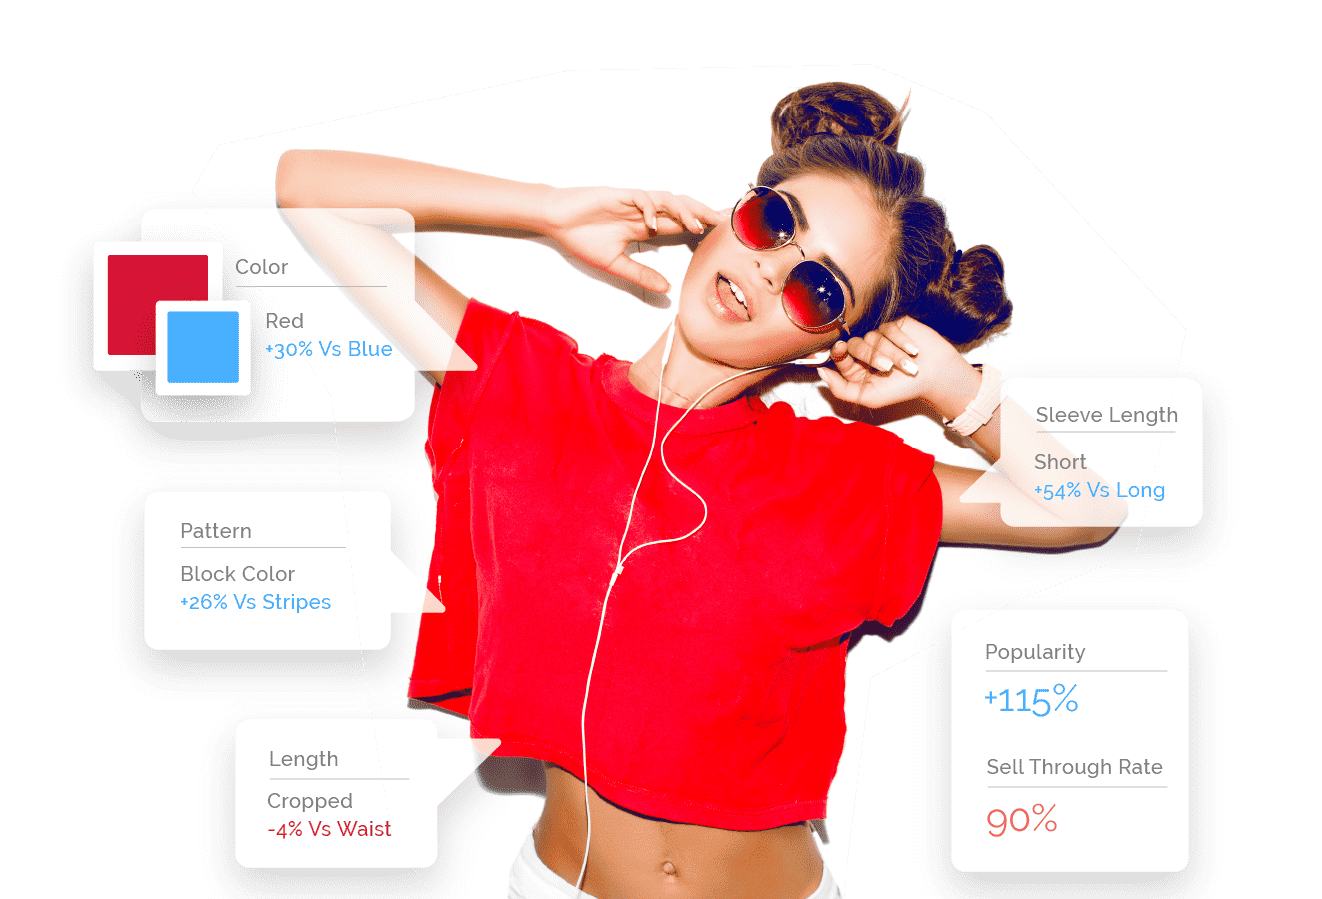 A young fashionable woman wearing a red shirt and catalog intelligence attributes popping up around the shirt including: Color (red +30% vs blue), Pattern (block color +26% vs stripes), Length (cropped -4% vs waist), Sleeve length (short +54% vs long), Popularity (+115%) and Sell Through Rate (90%)